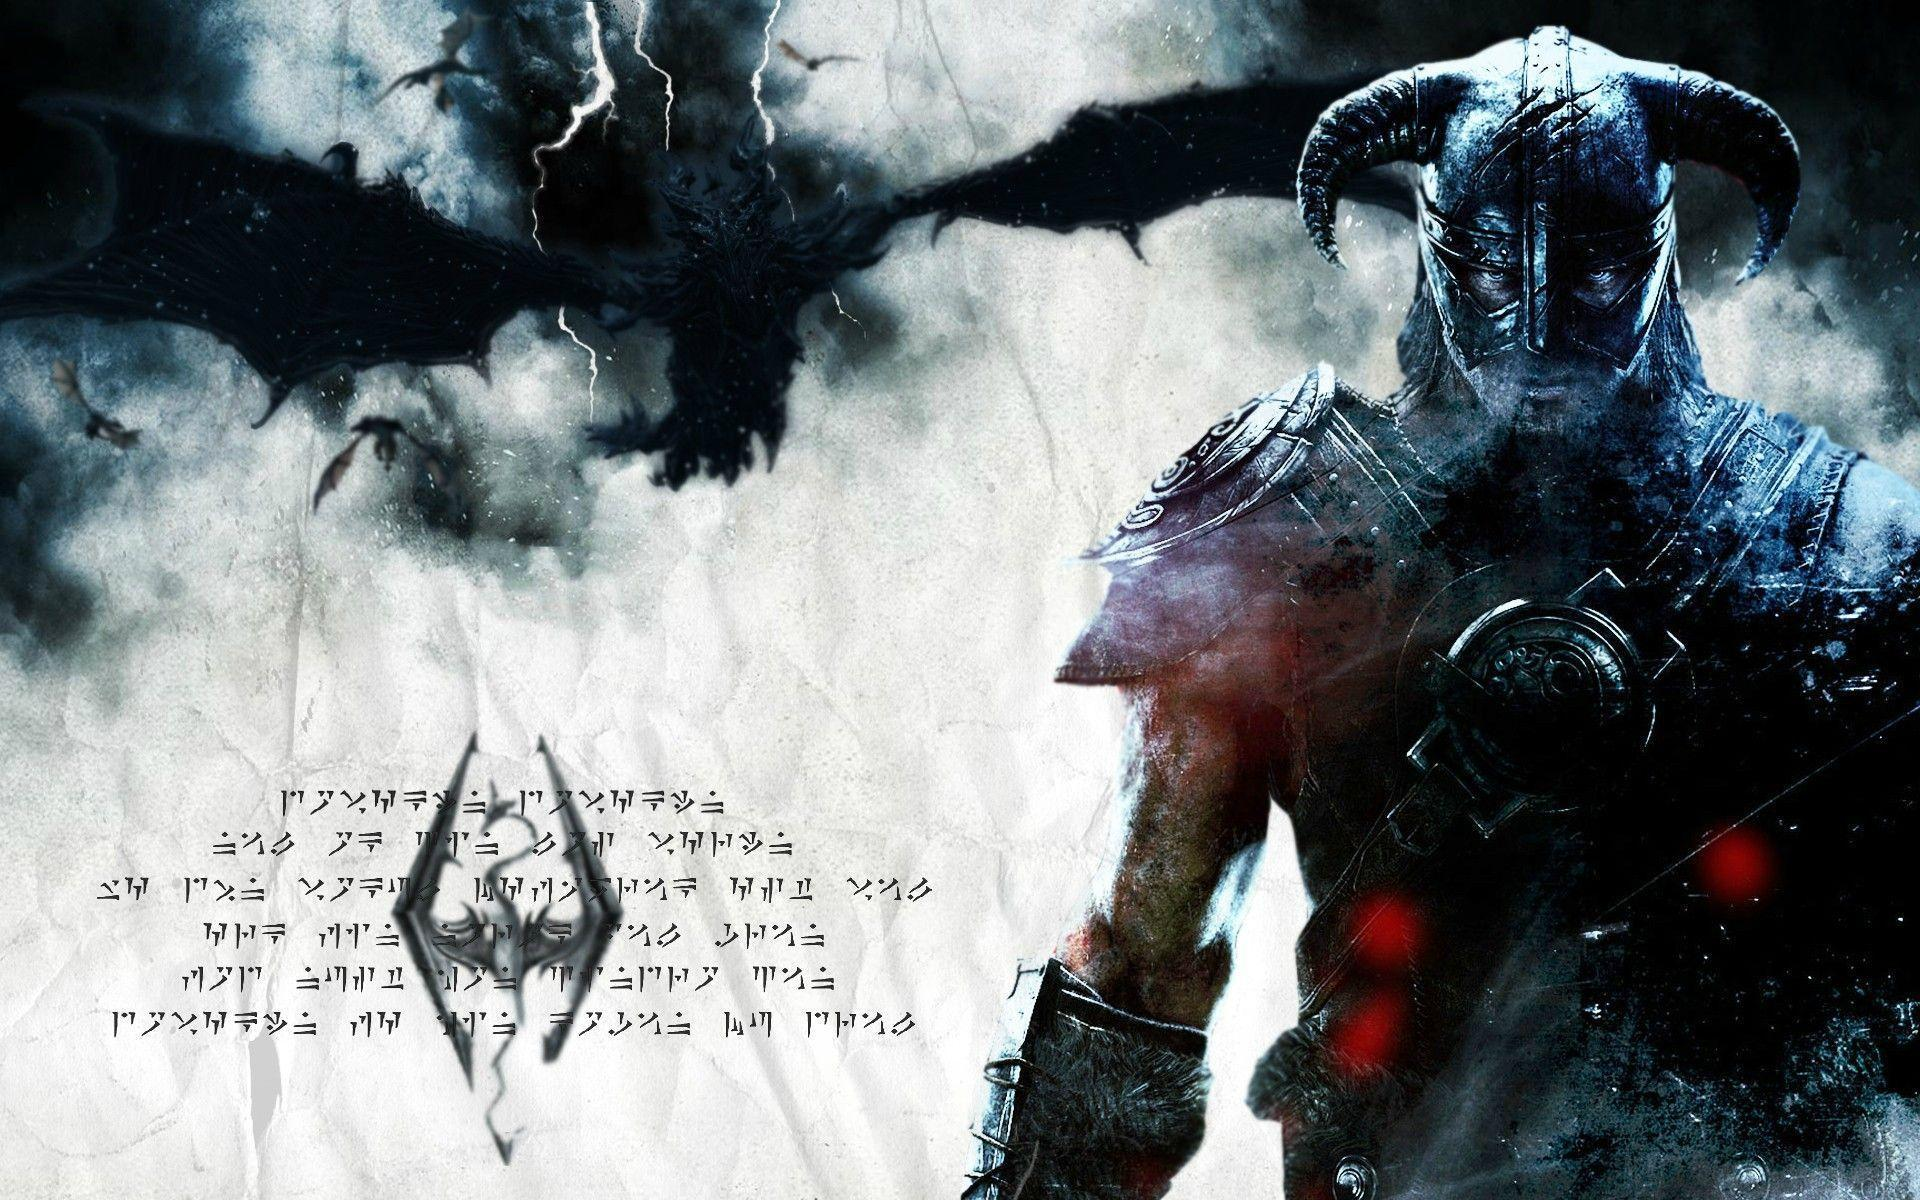 skyrim 1980 x 1040 wallpaper - photo #22